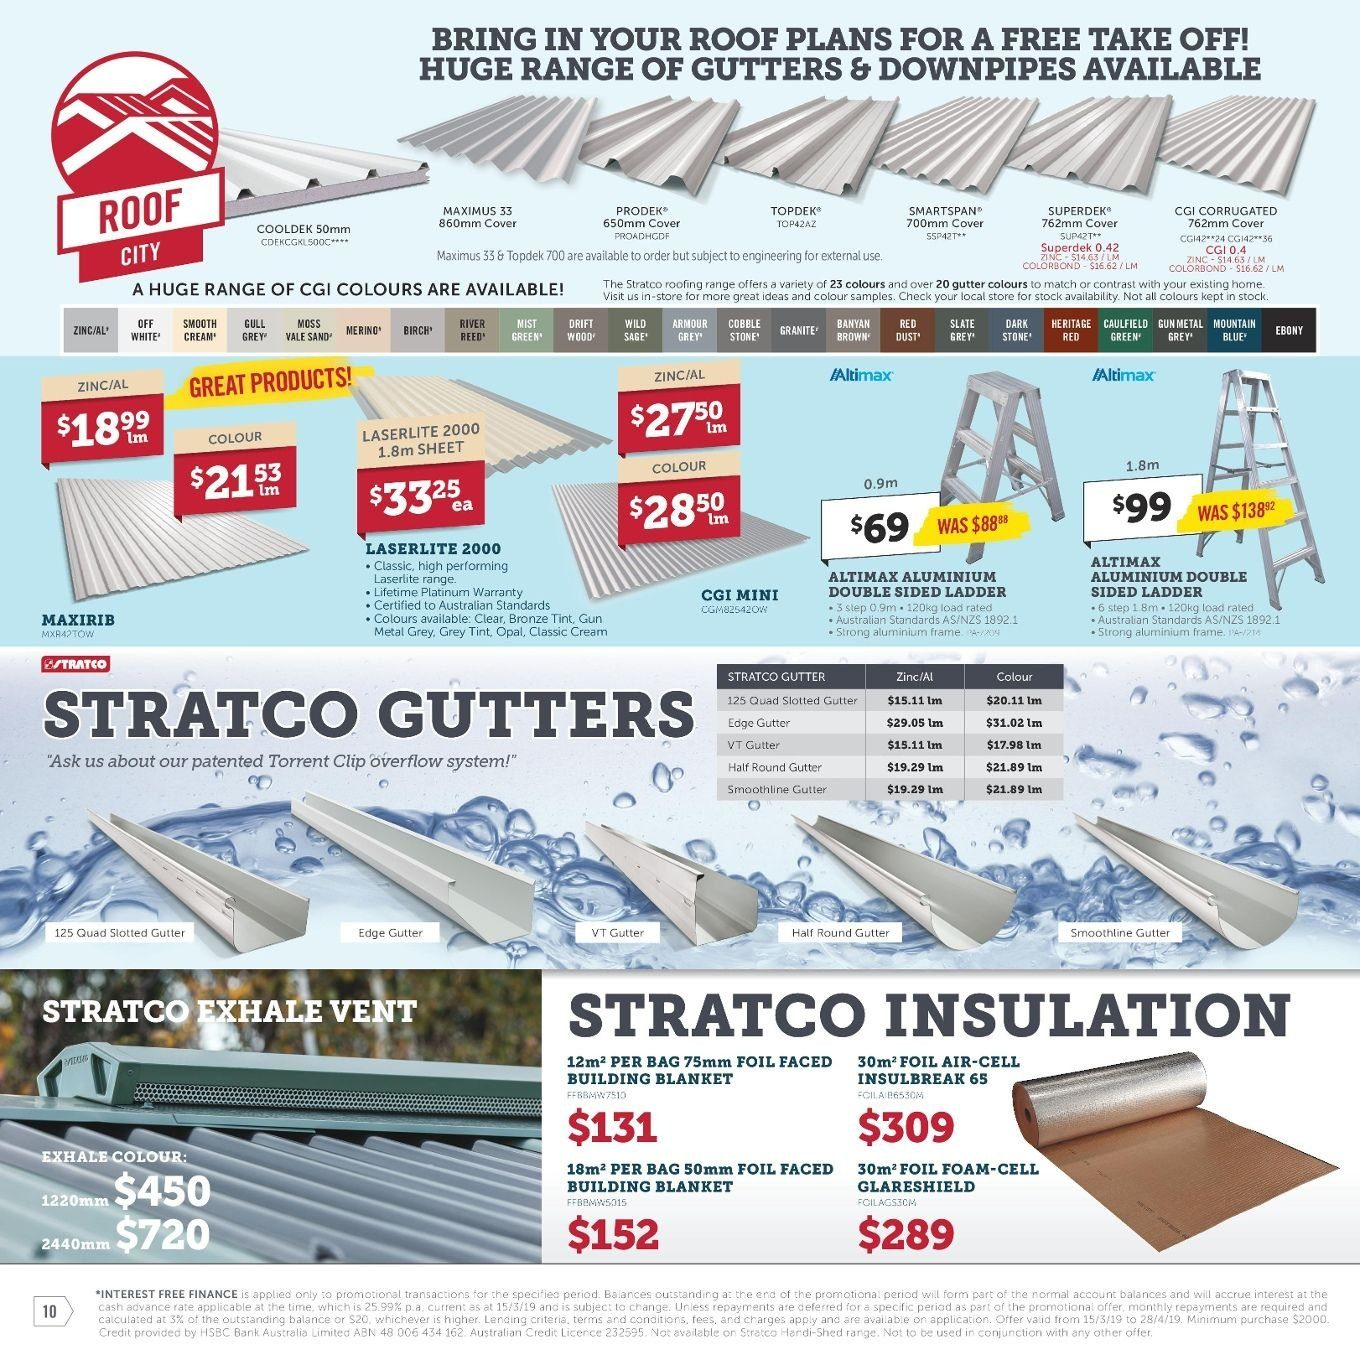 Stratco catalogue and weekly specials 15 3 2019 - 28 4 2019